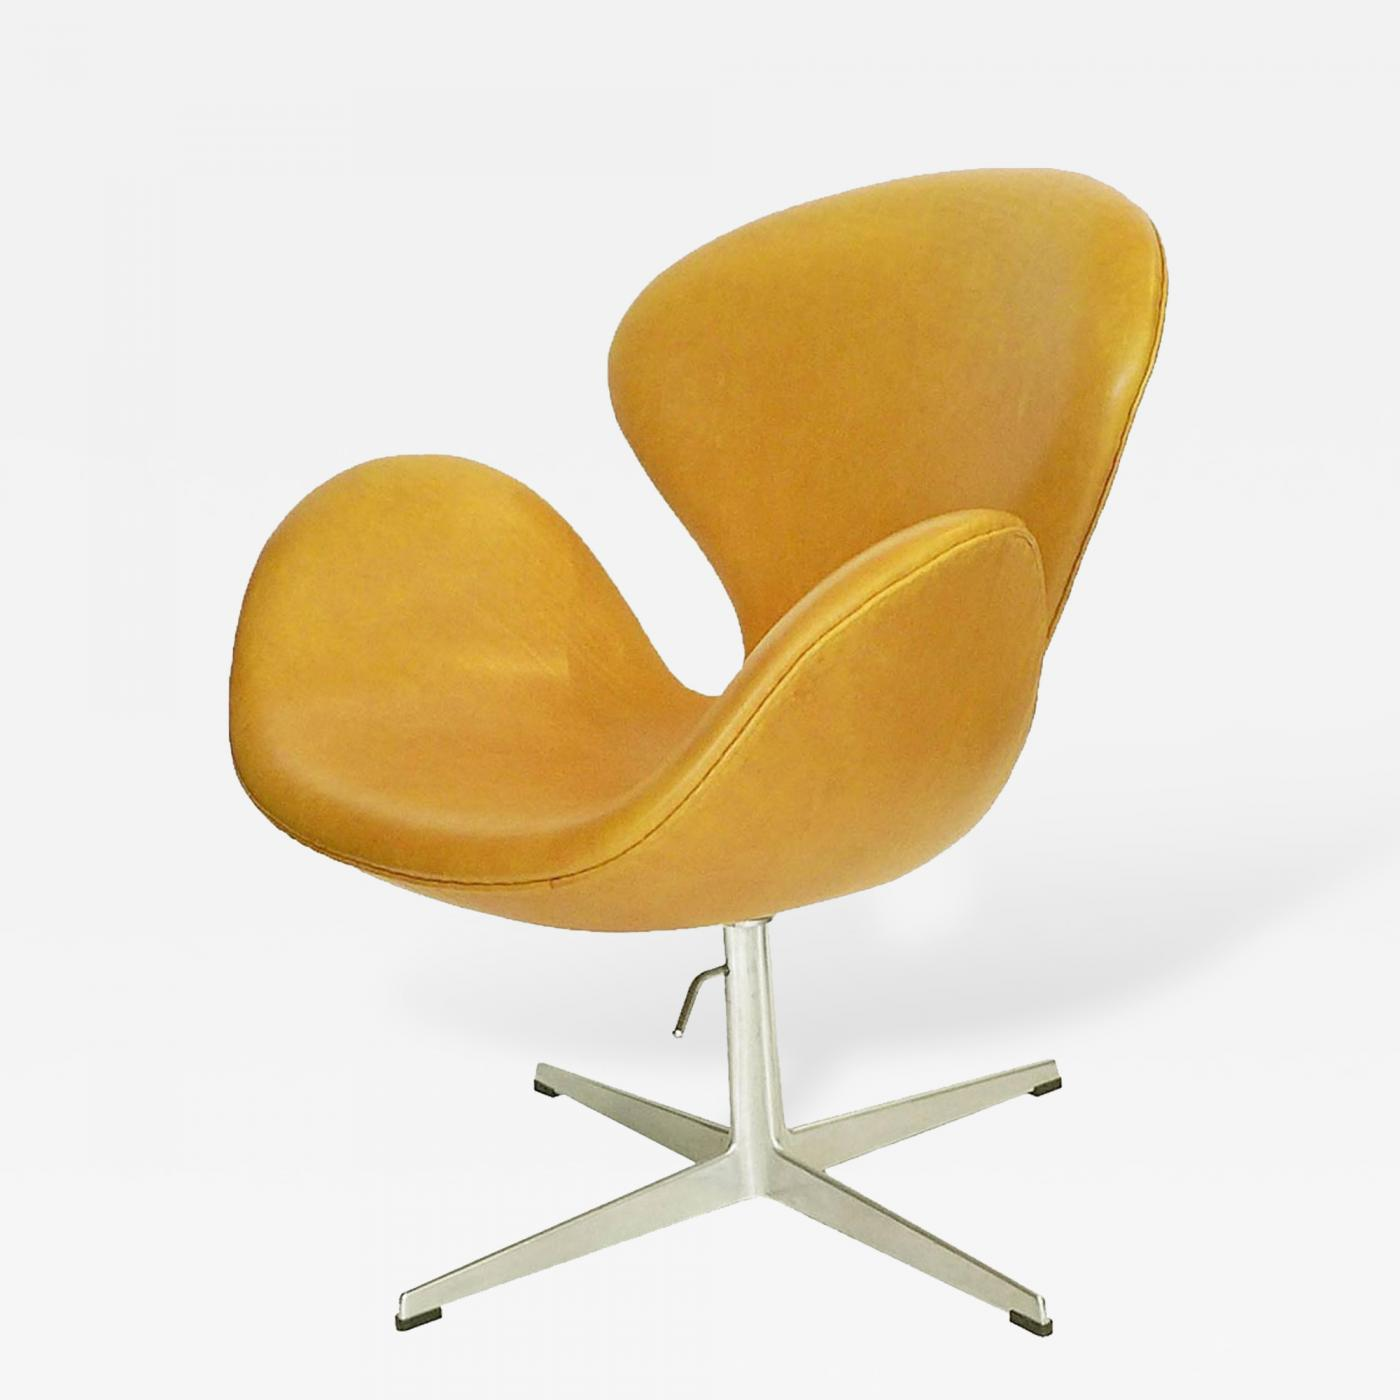 This Rare Adjule Swan Chair Designed By Arne Jacobsen Circa 1958 Was Manufactured Fritz Hansen For A Very Short Time The Upholstery Is Vintage